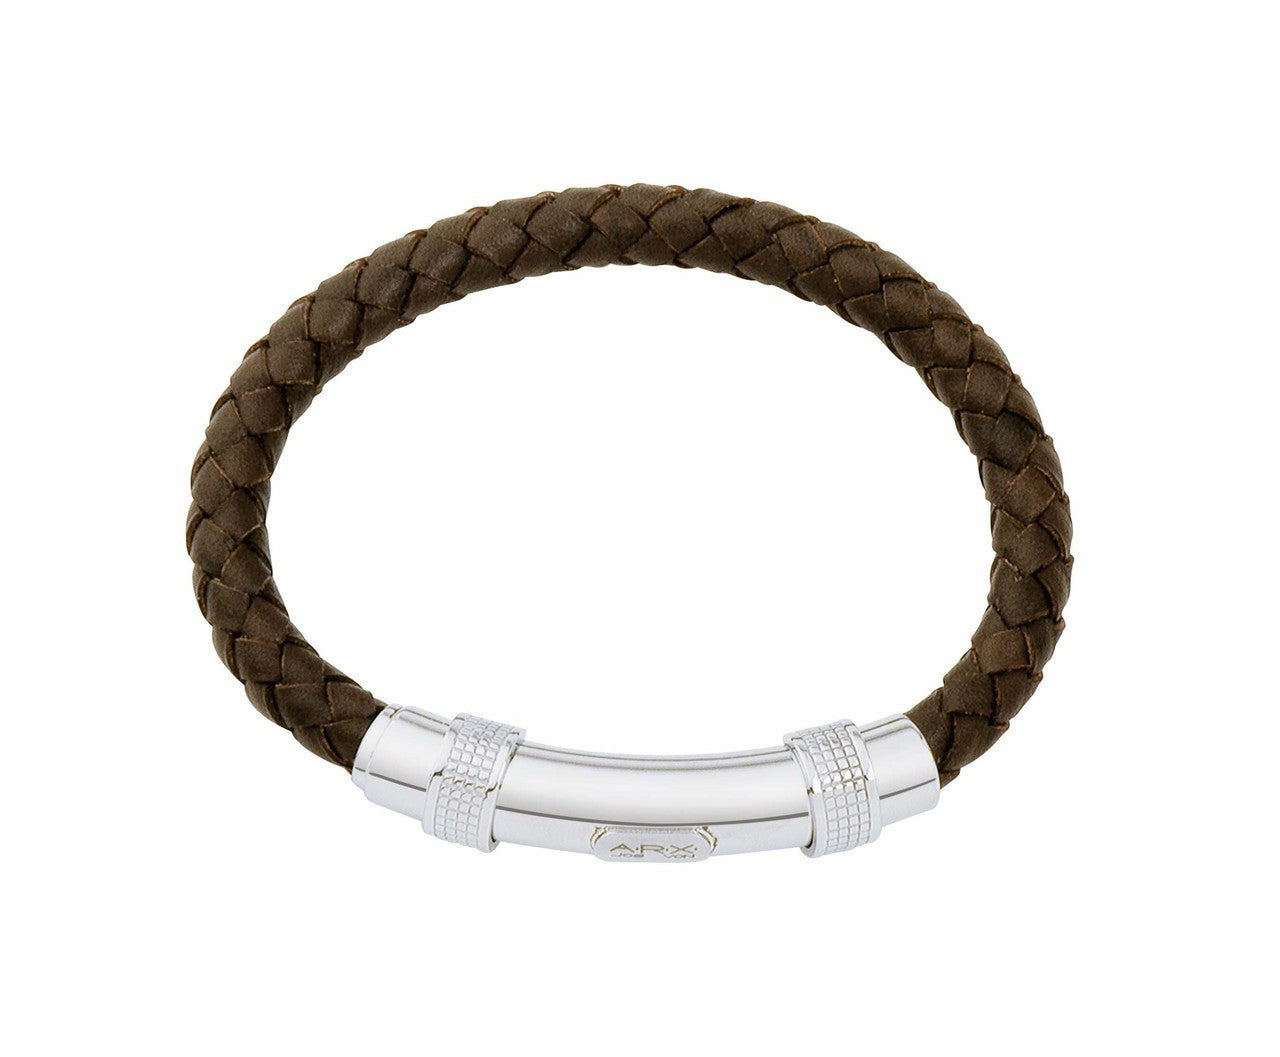 INB02 leather and steel adjustable bracelet